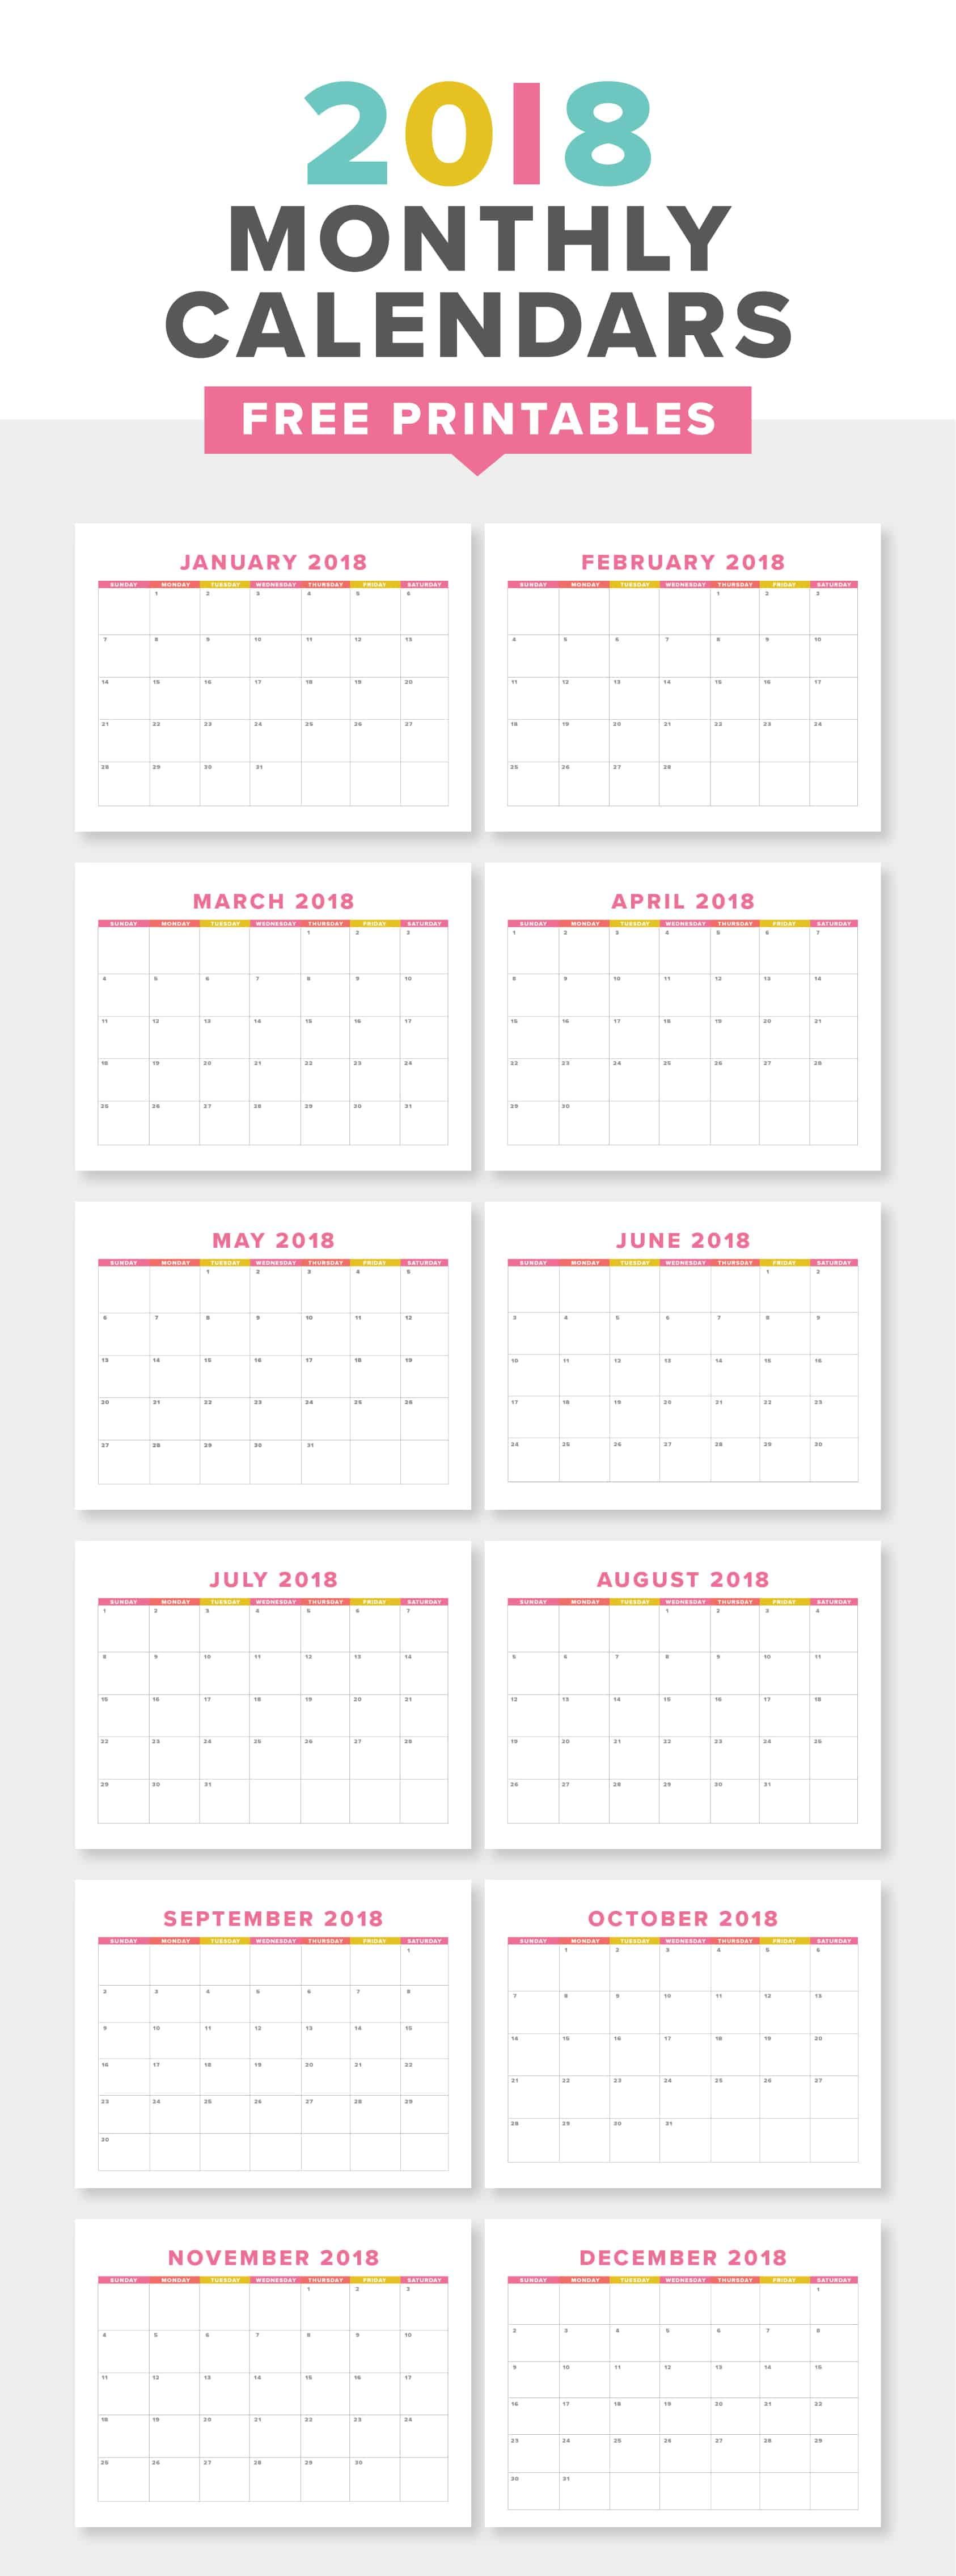 Download this free printable 2018 monthly calendar to keep track of the new year! The downloadable PDF is US Letter Sized and quick to print at home.